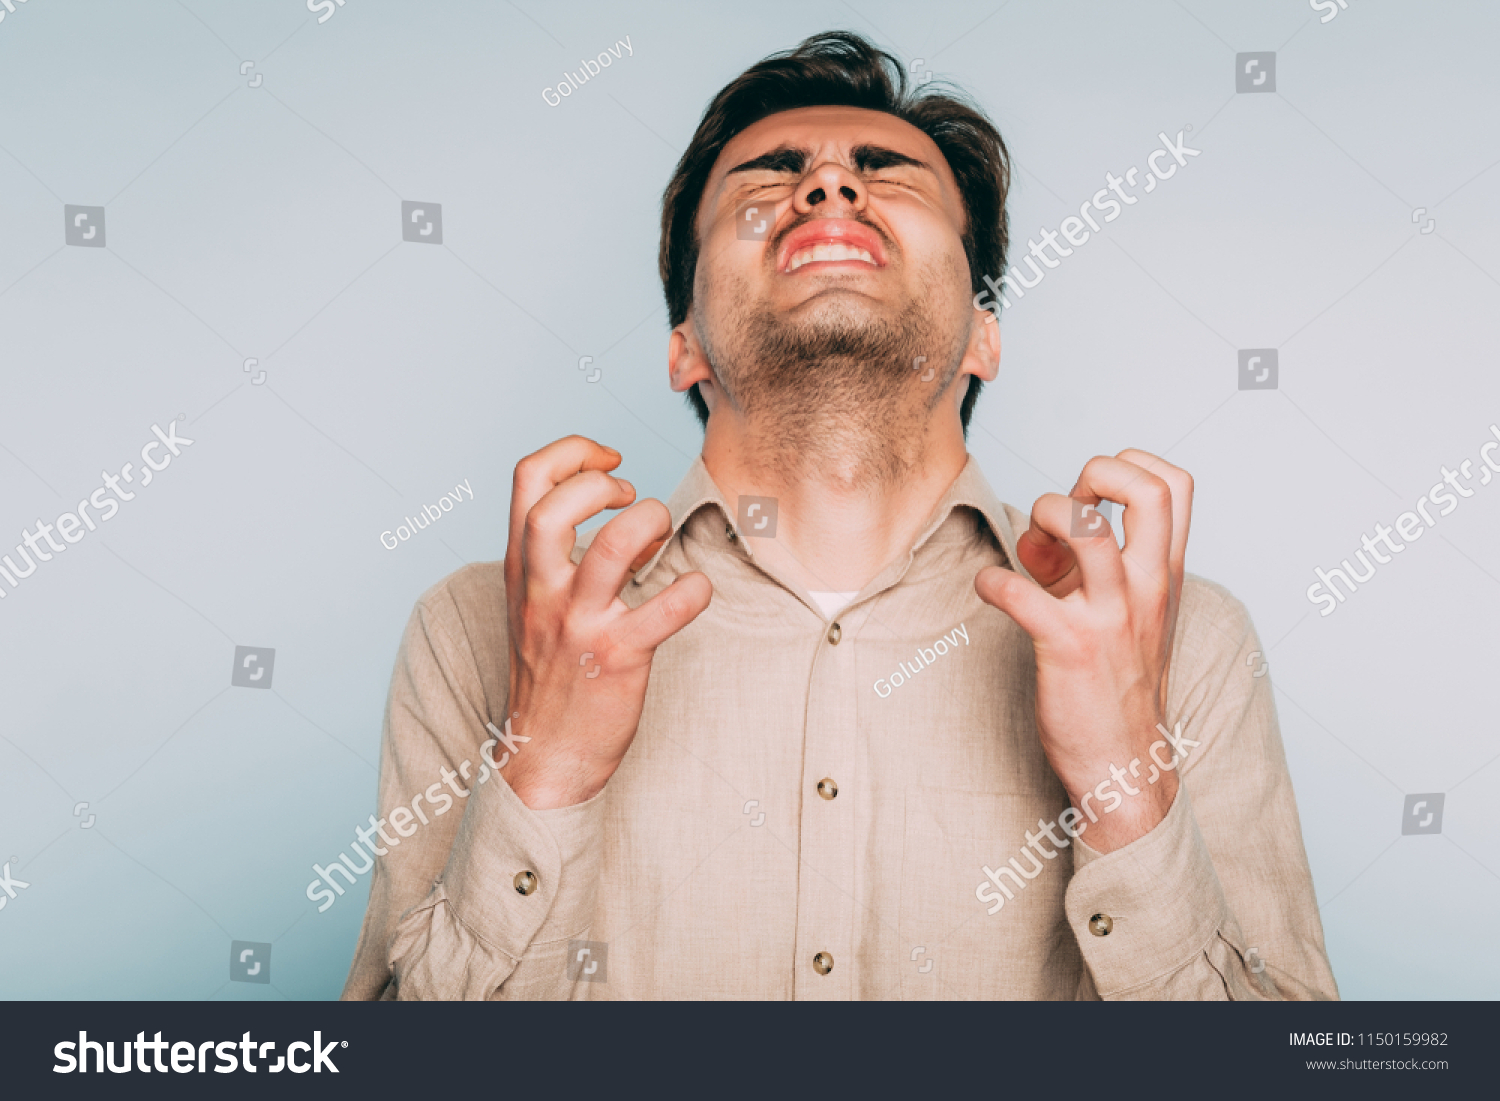 infuriated rage and anger. man went berserk with fury. portrait of a young brunet guy on light background. emotion facial expression. feelings and people reaction concept. #1150159982